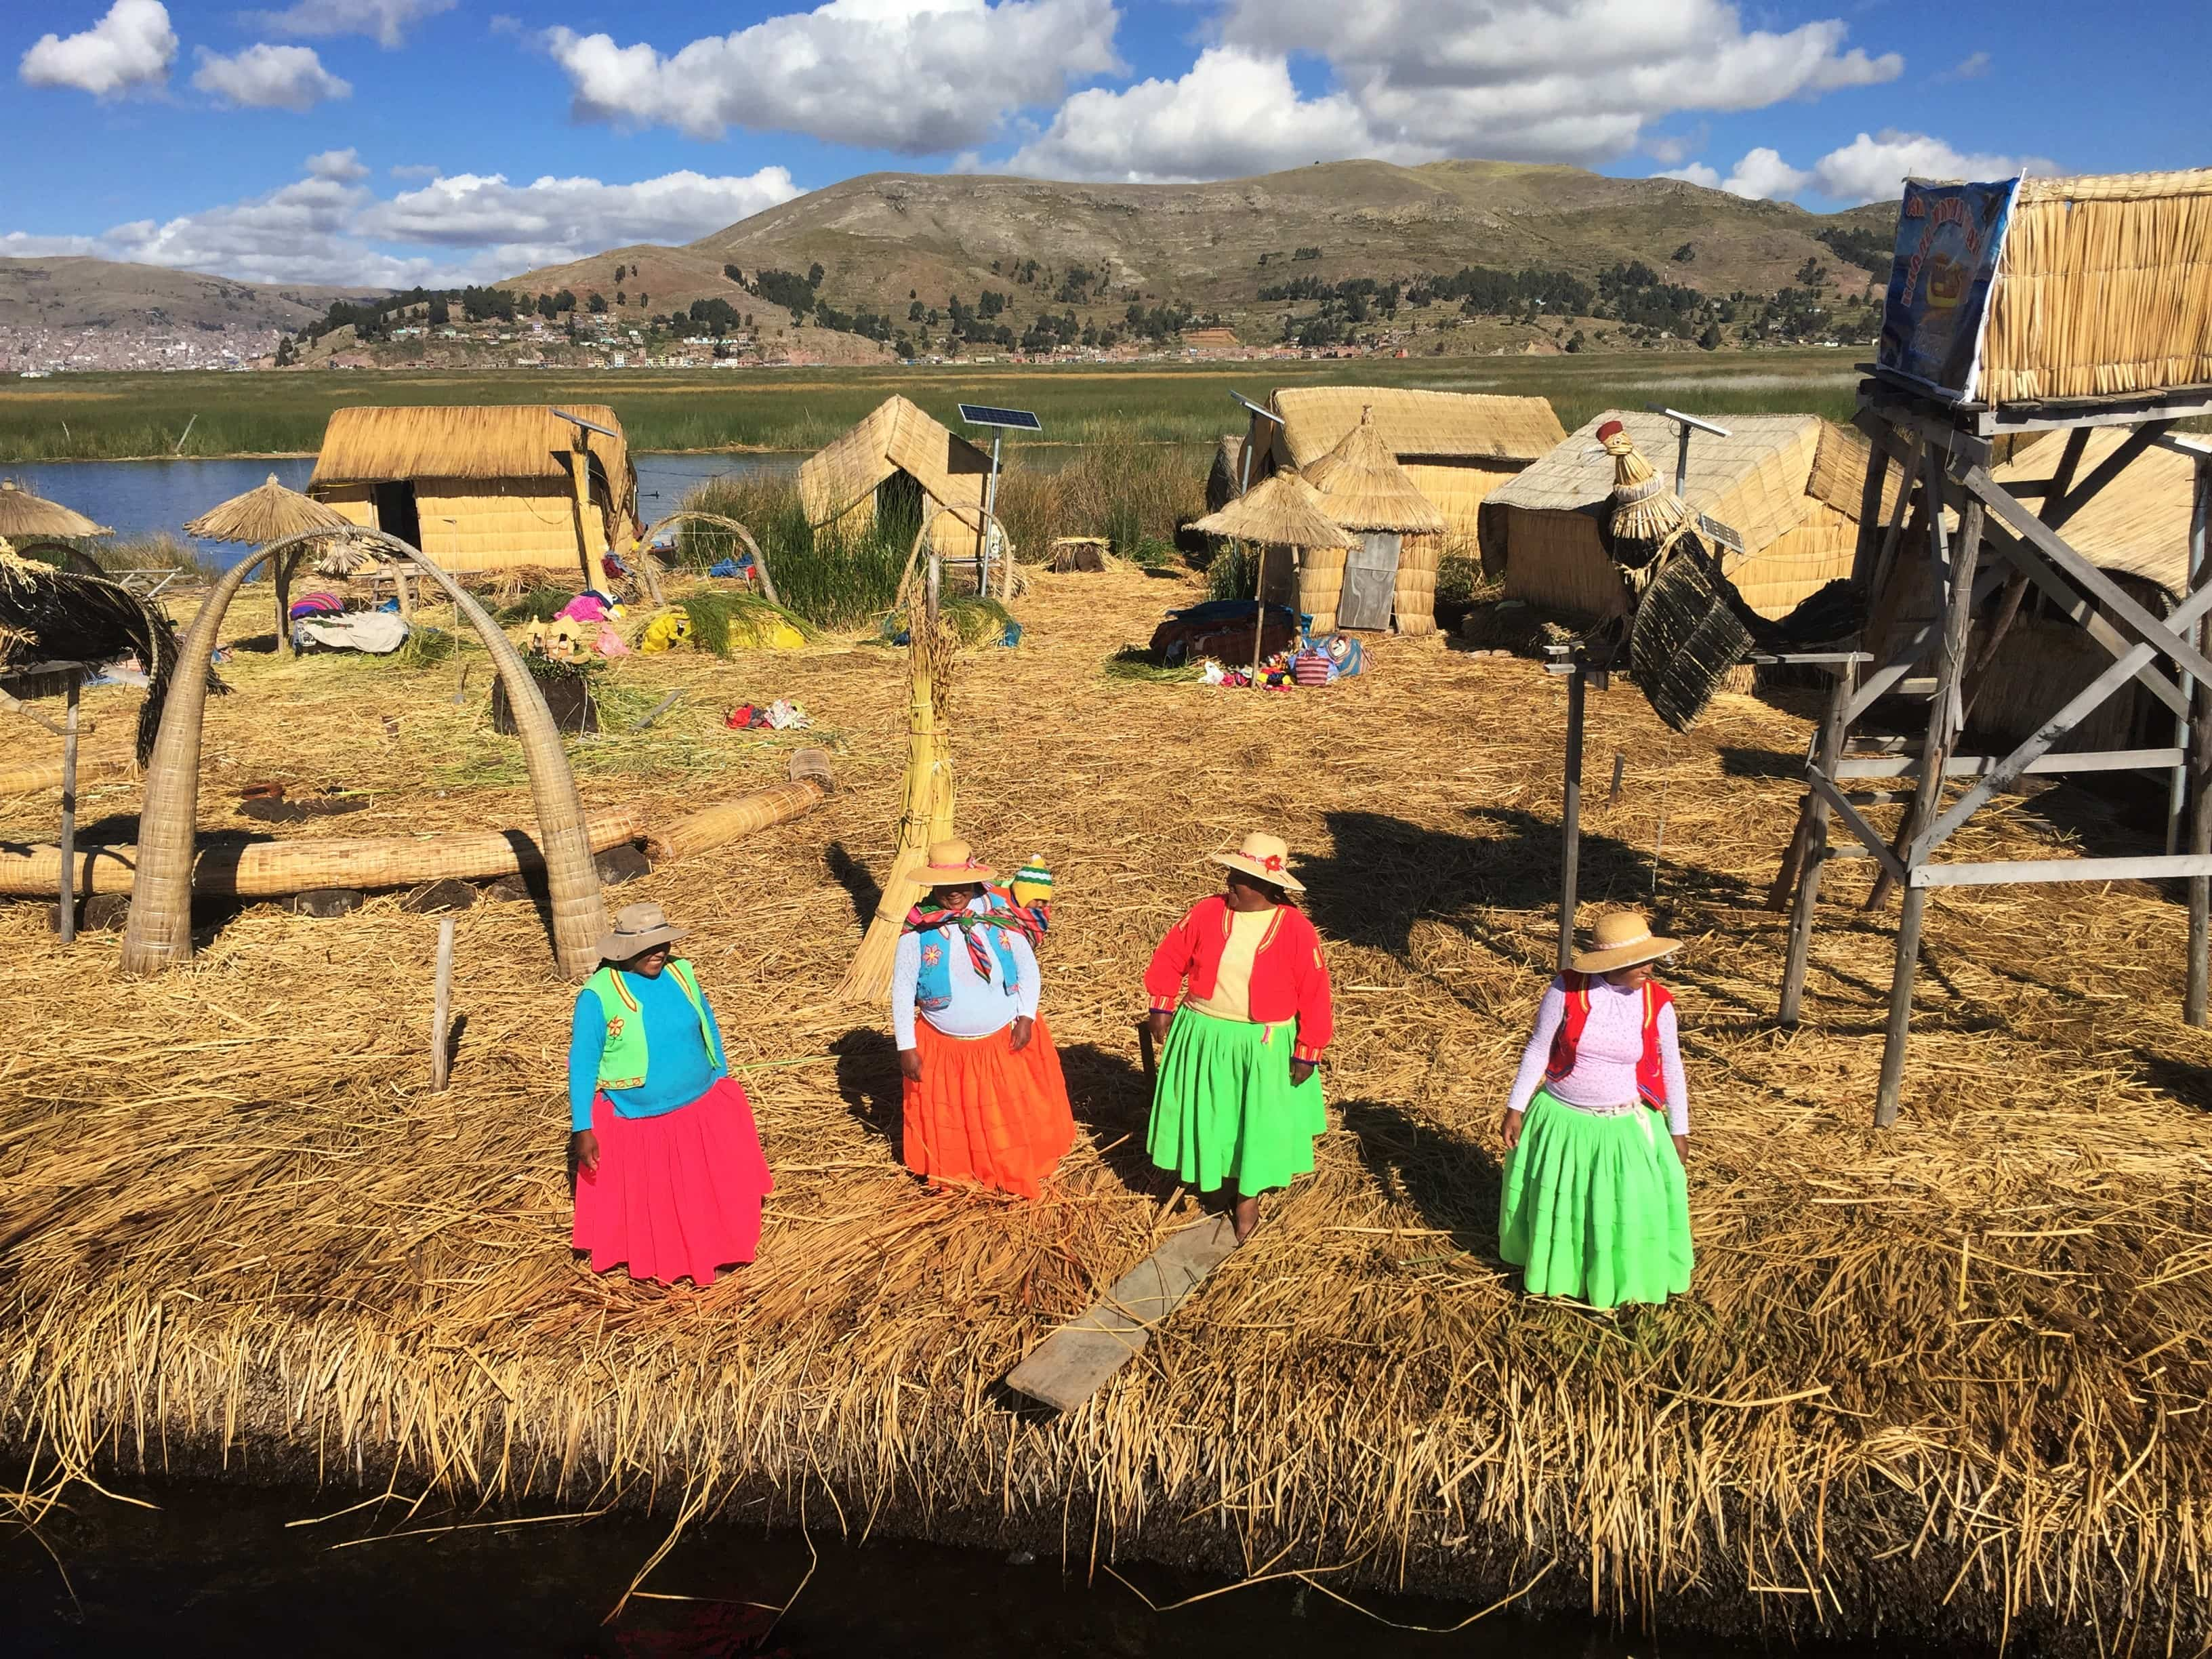 The brightly coloured clothes of the Uros women on the floating islands, Lake Titicaca Trip